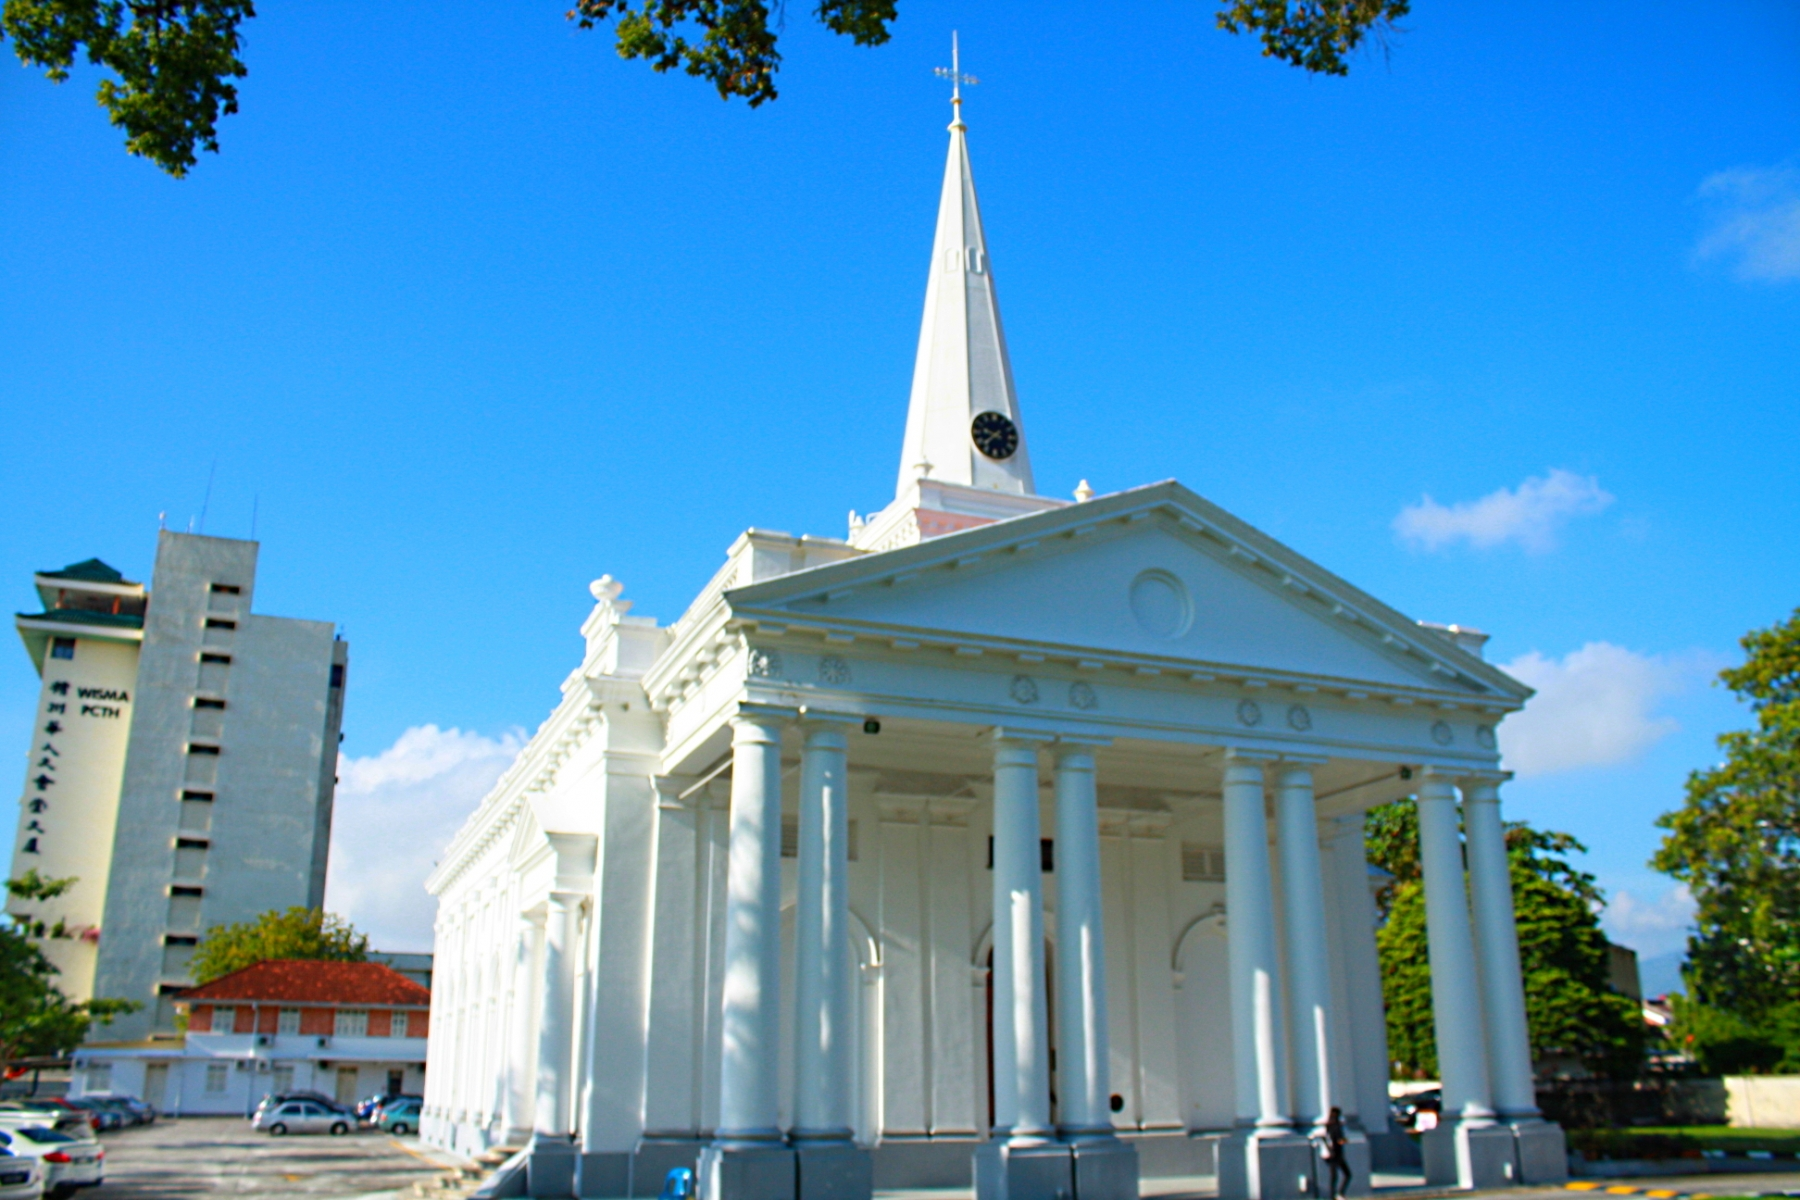 St_George_Anglican_Church_Georgetown_Penang_Malaysia